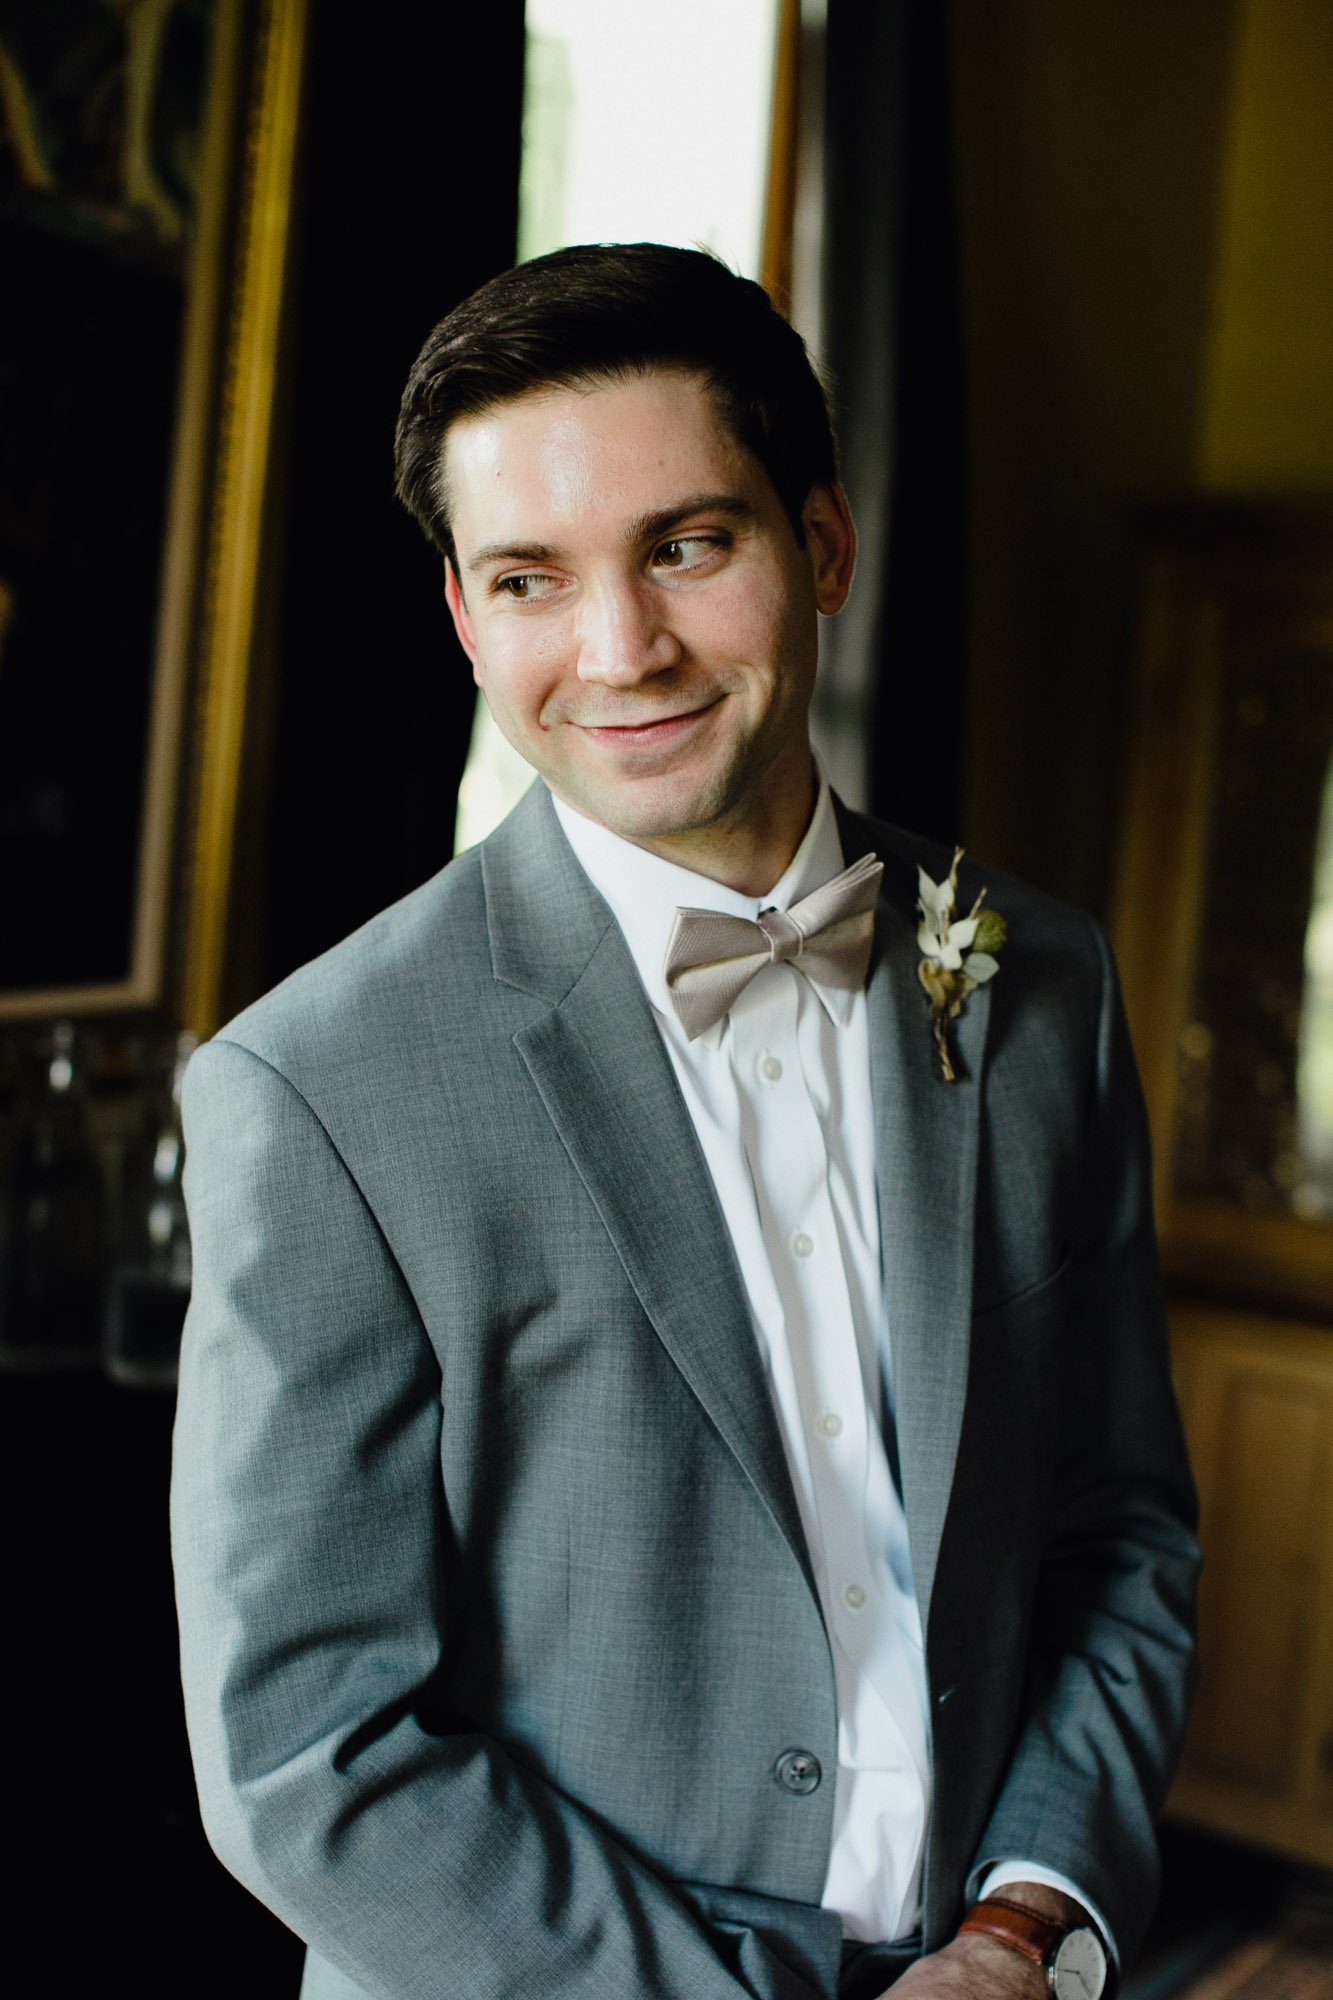 headshot of a groom looking handsome at his Austin Texas wedding